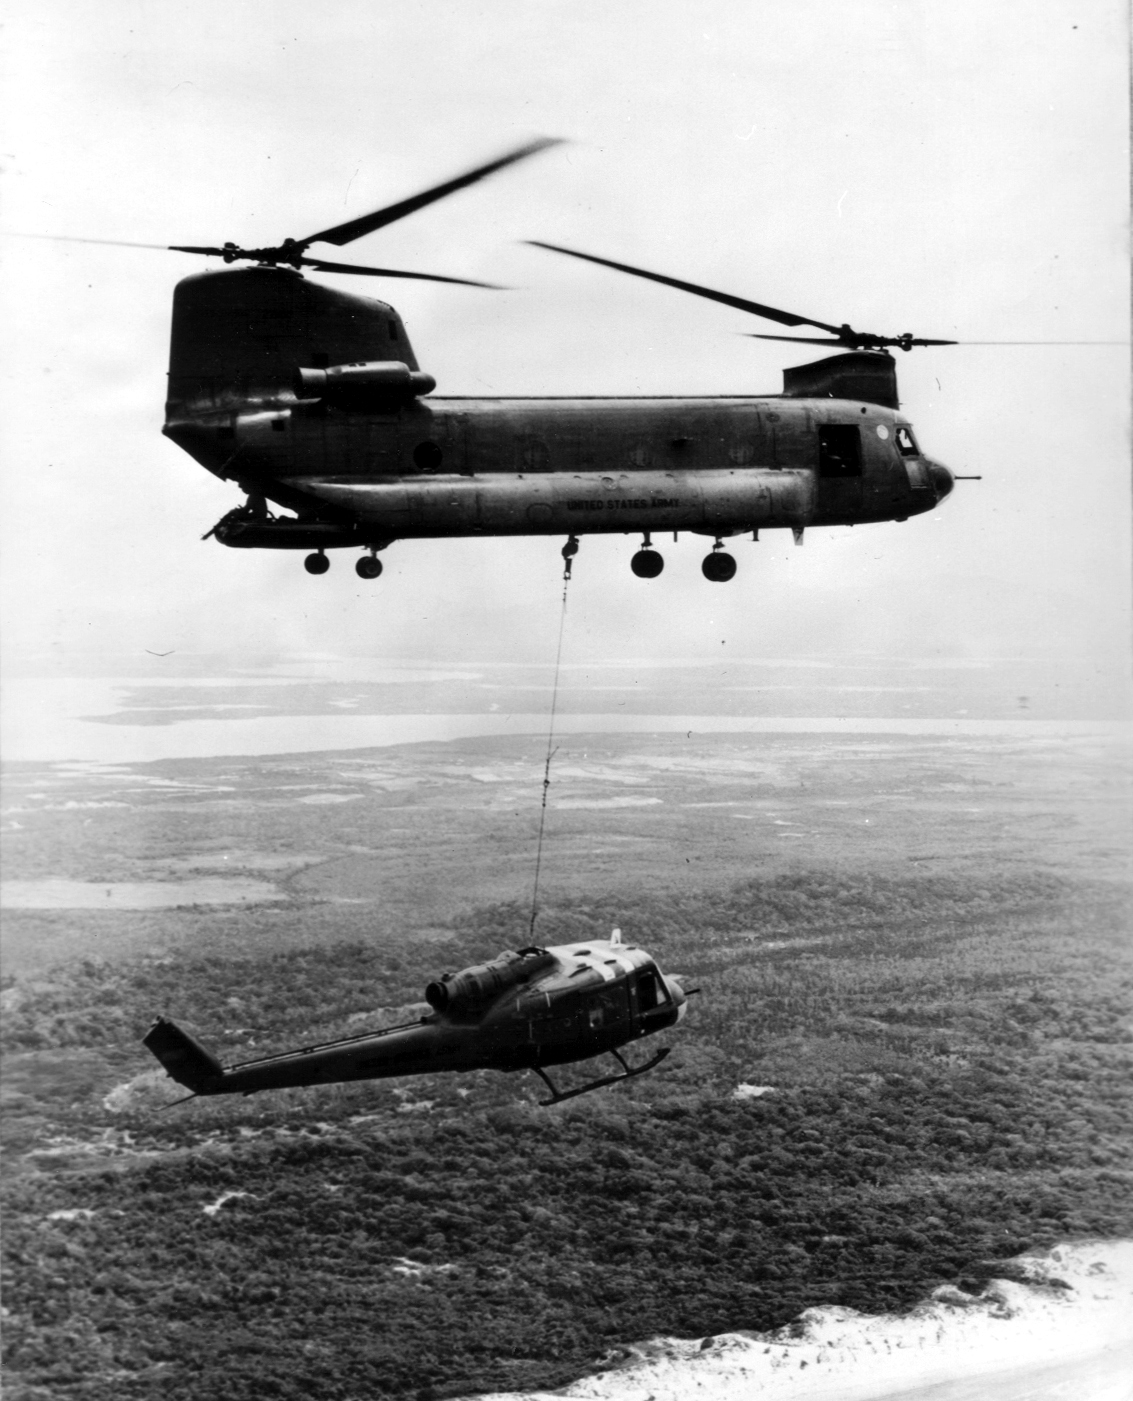 nam helicopter with File Ch 47 Recovers Uh 1 In Vietnam on Article Le  mandant En Chef De La Marine Russe Evoque Le Futur Porte Avions 112409771 besides Destroyed Cholon District Of Saigon 1968 2 also 603E1 as well Ag 222c Porciglione E G 222 Coin together with Flight Of The Intruder A Review Of Heroics And Ros Aircraft.